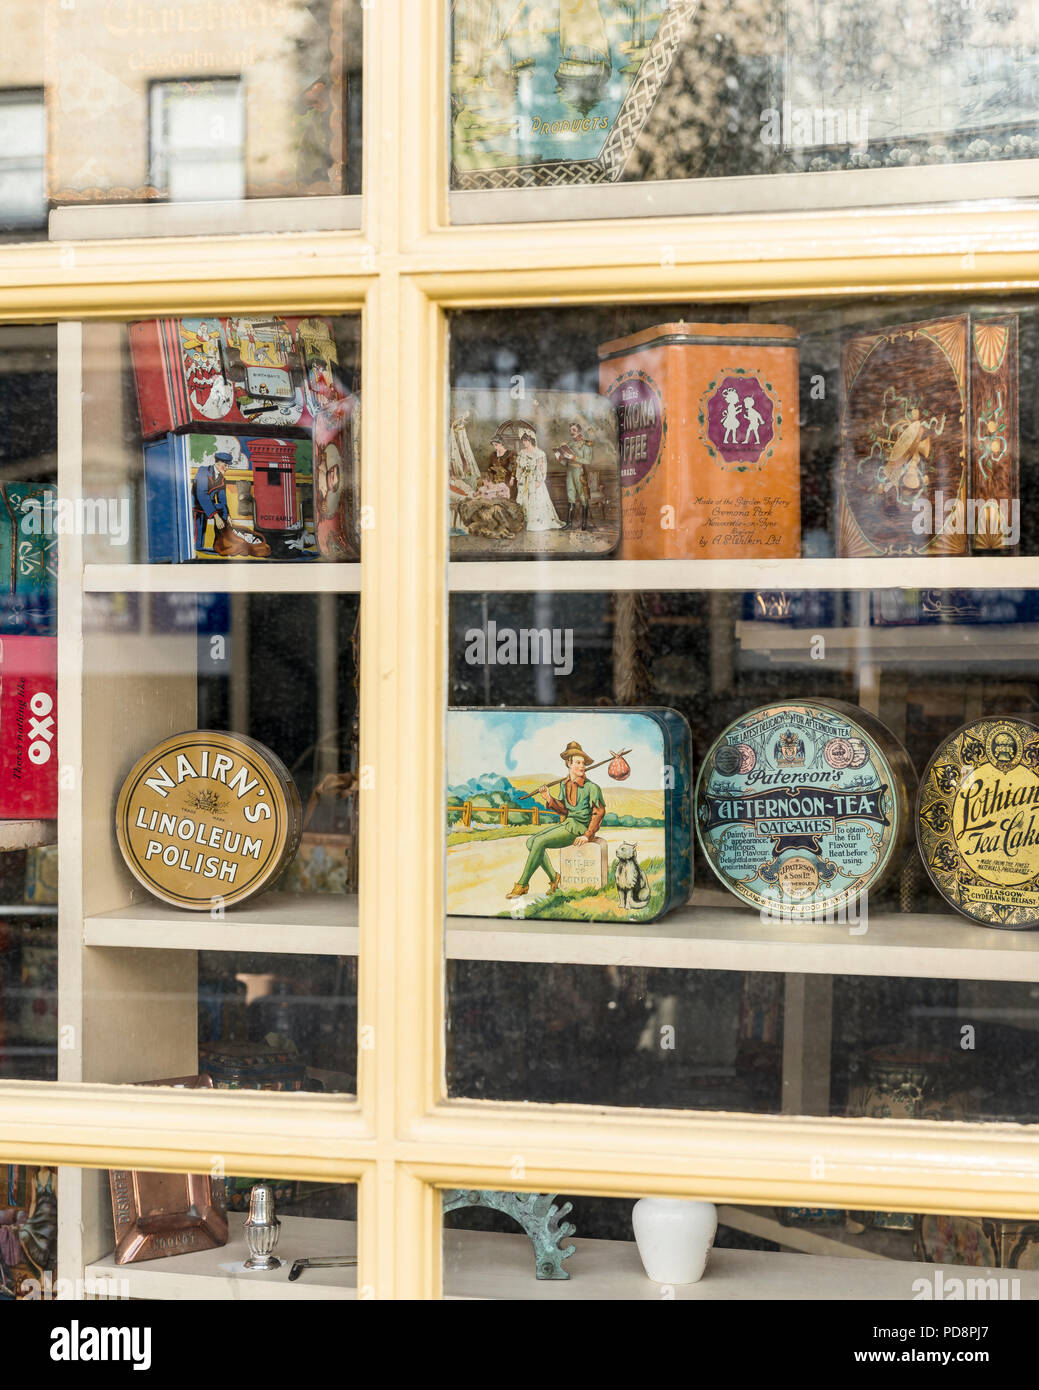 Antique British tins in window display of Michael & Jo Saffell antiques shop, Bath - Stock Image